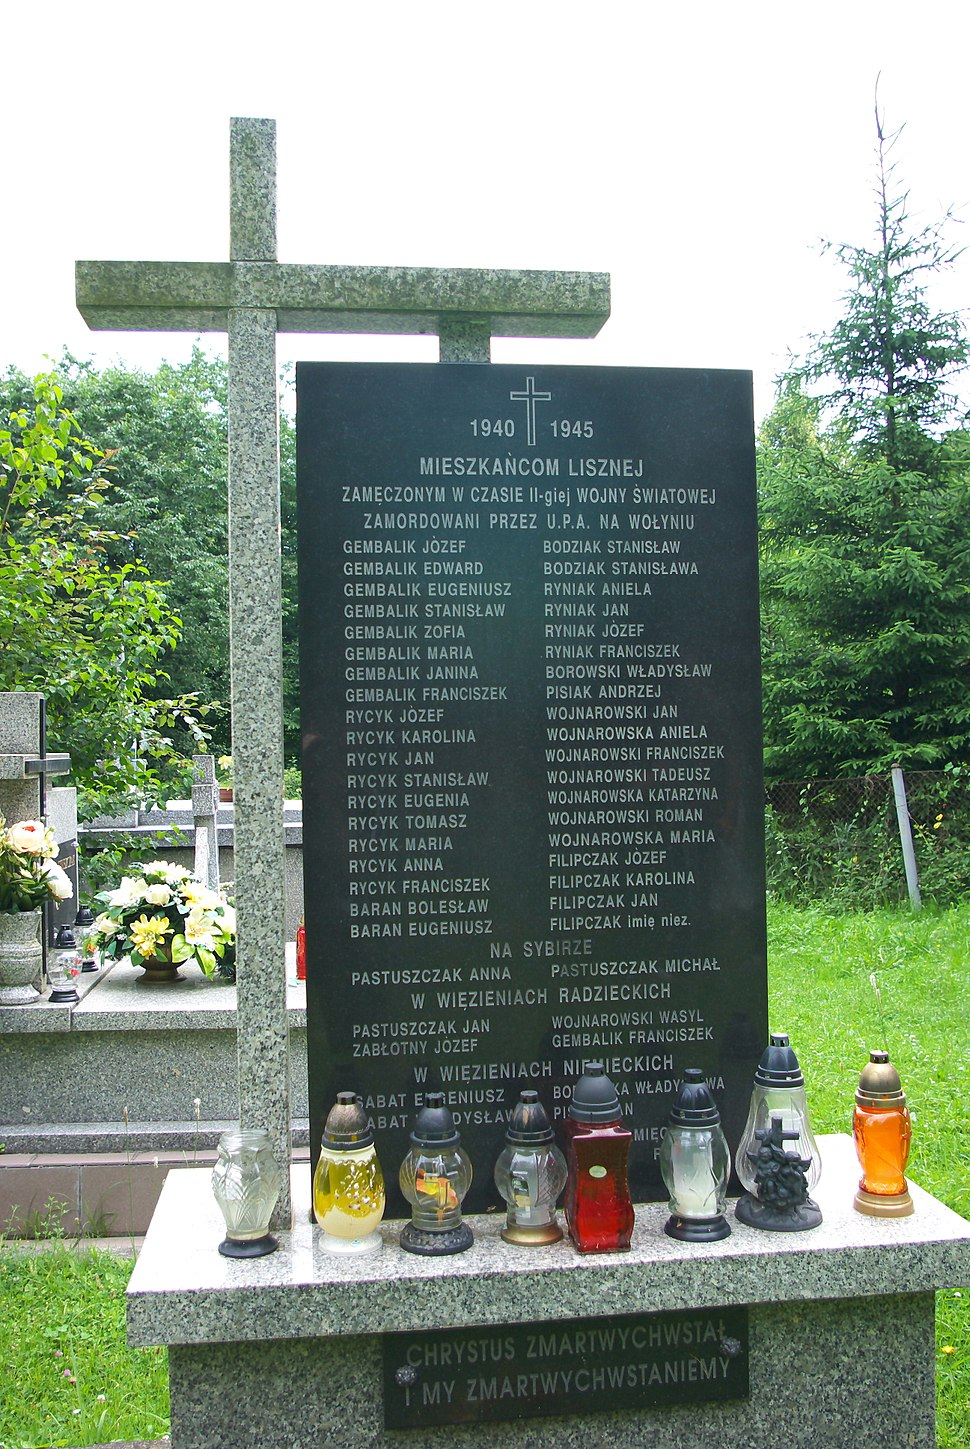 Monument to vitims of Volhynia massacre 1940-1945 at cemetery in Liszna plaque